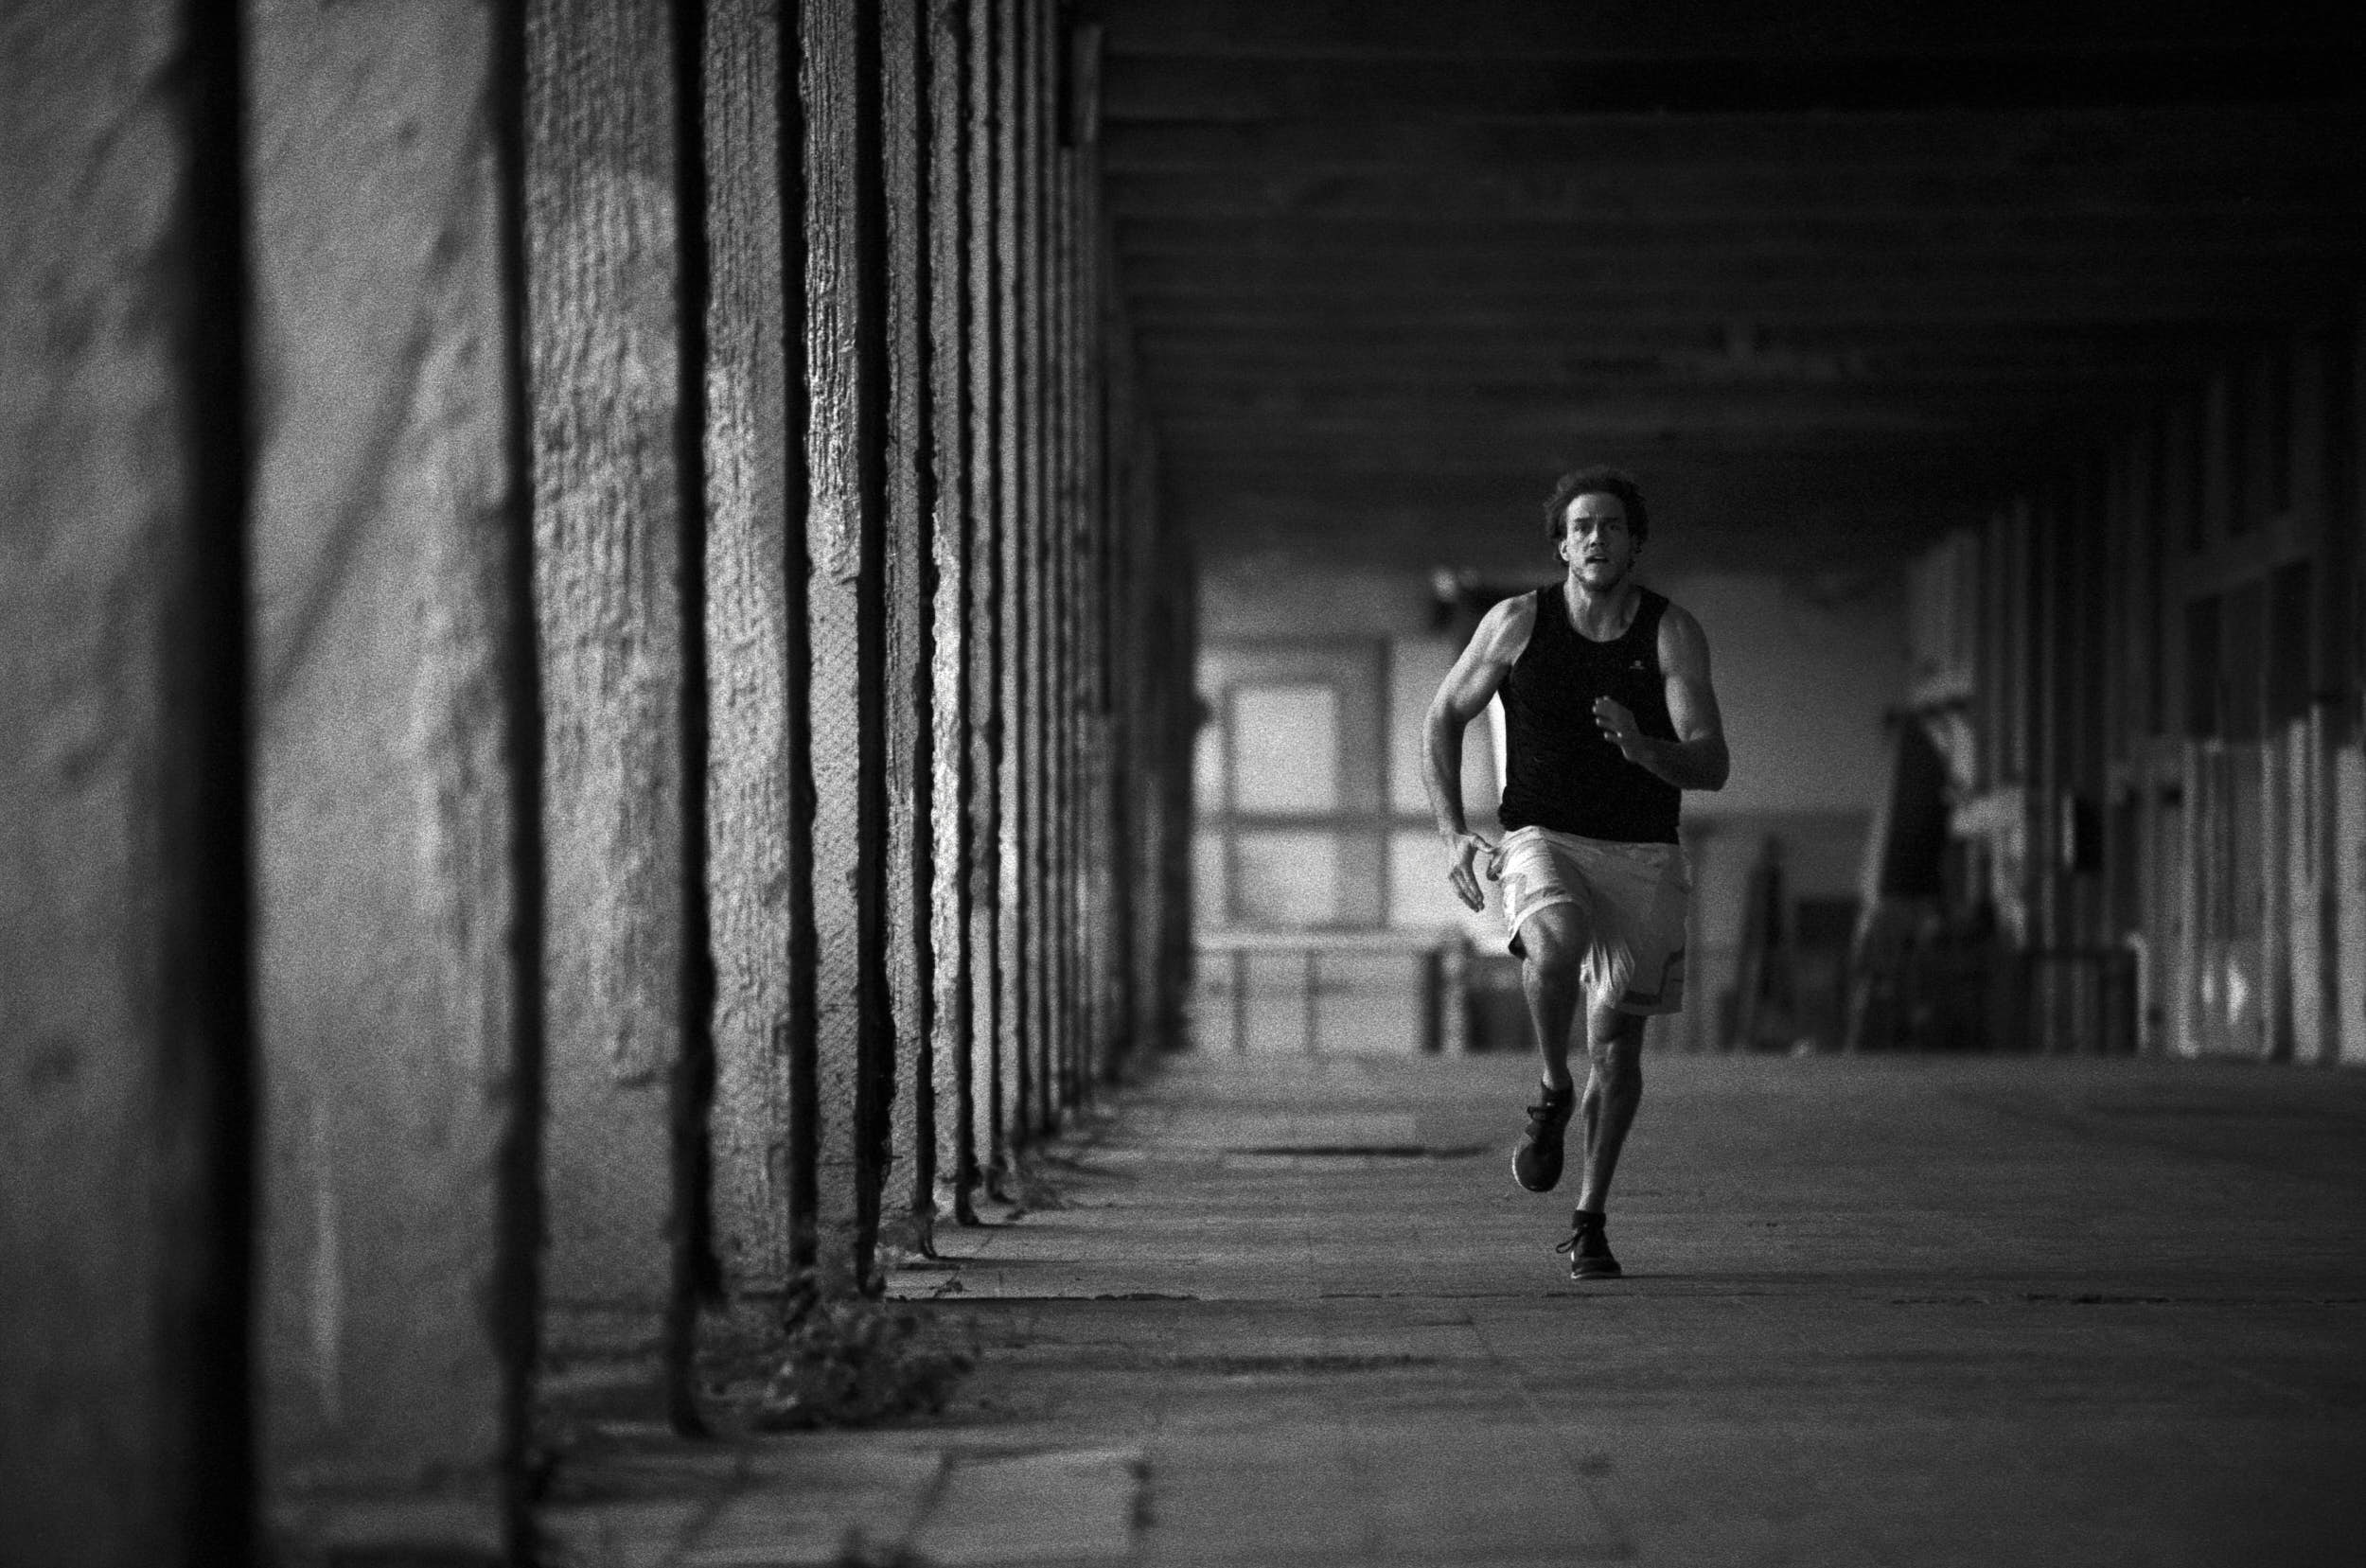 Muscular athlete sprinting in an industrial warehouse.